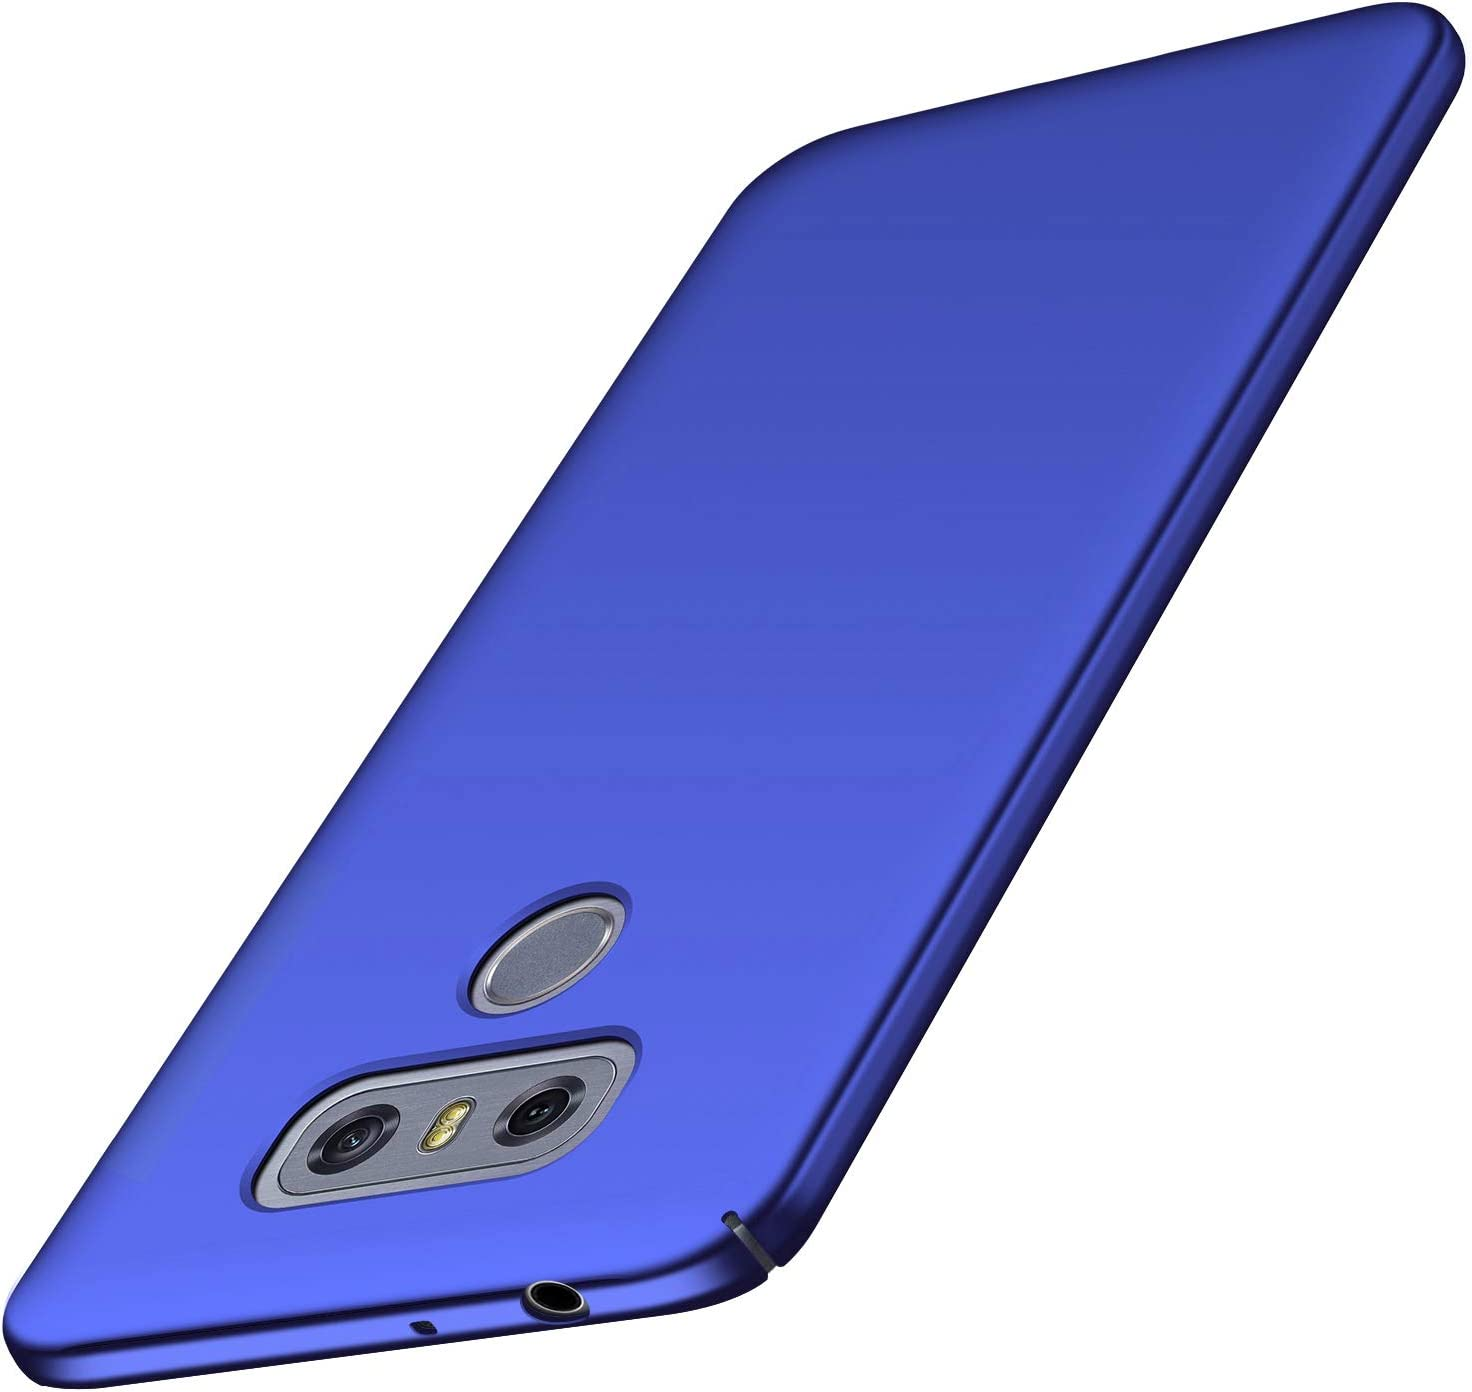 Arkour LG G6 Case, Minimalist Ultra Thin Slim Fit Smooth Matte Surface Hard PC Cover for LG G6 (Blue)